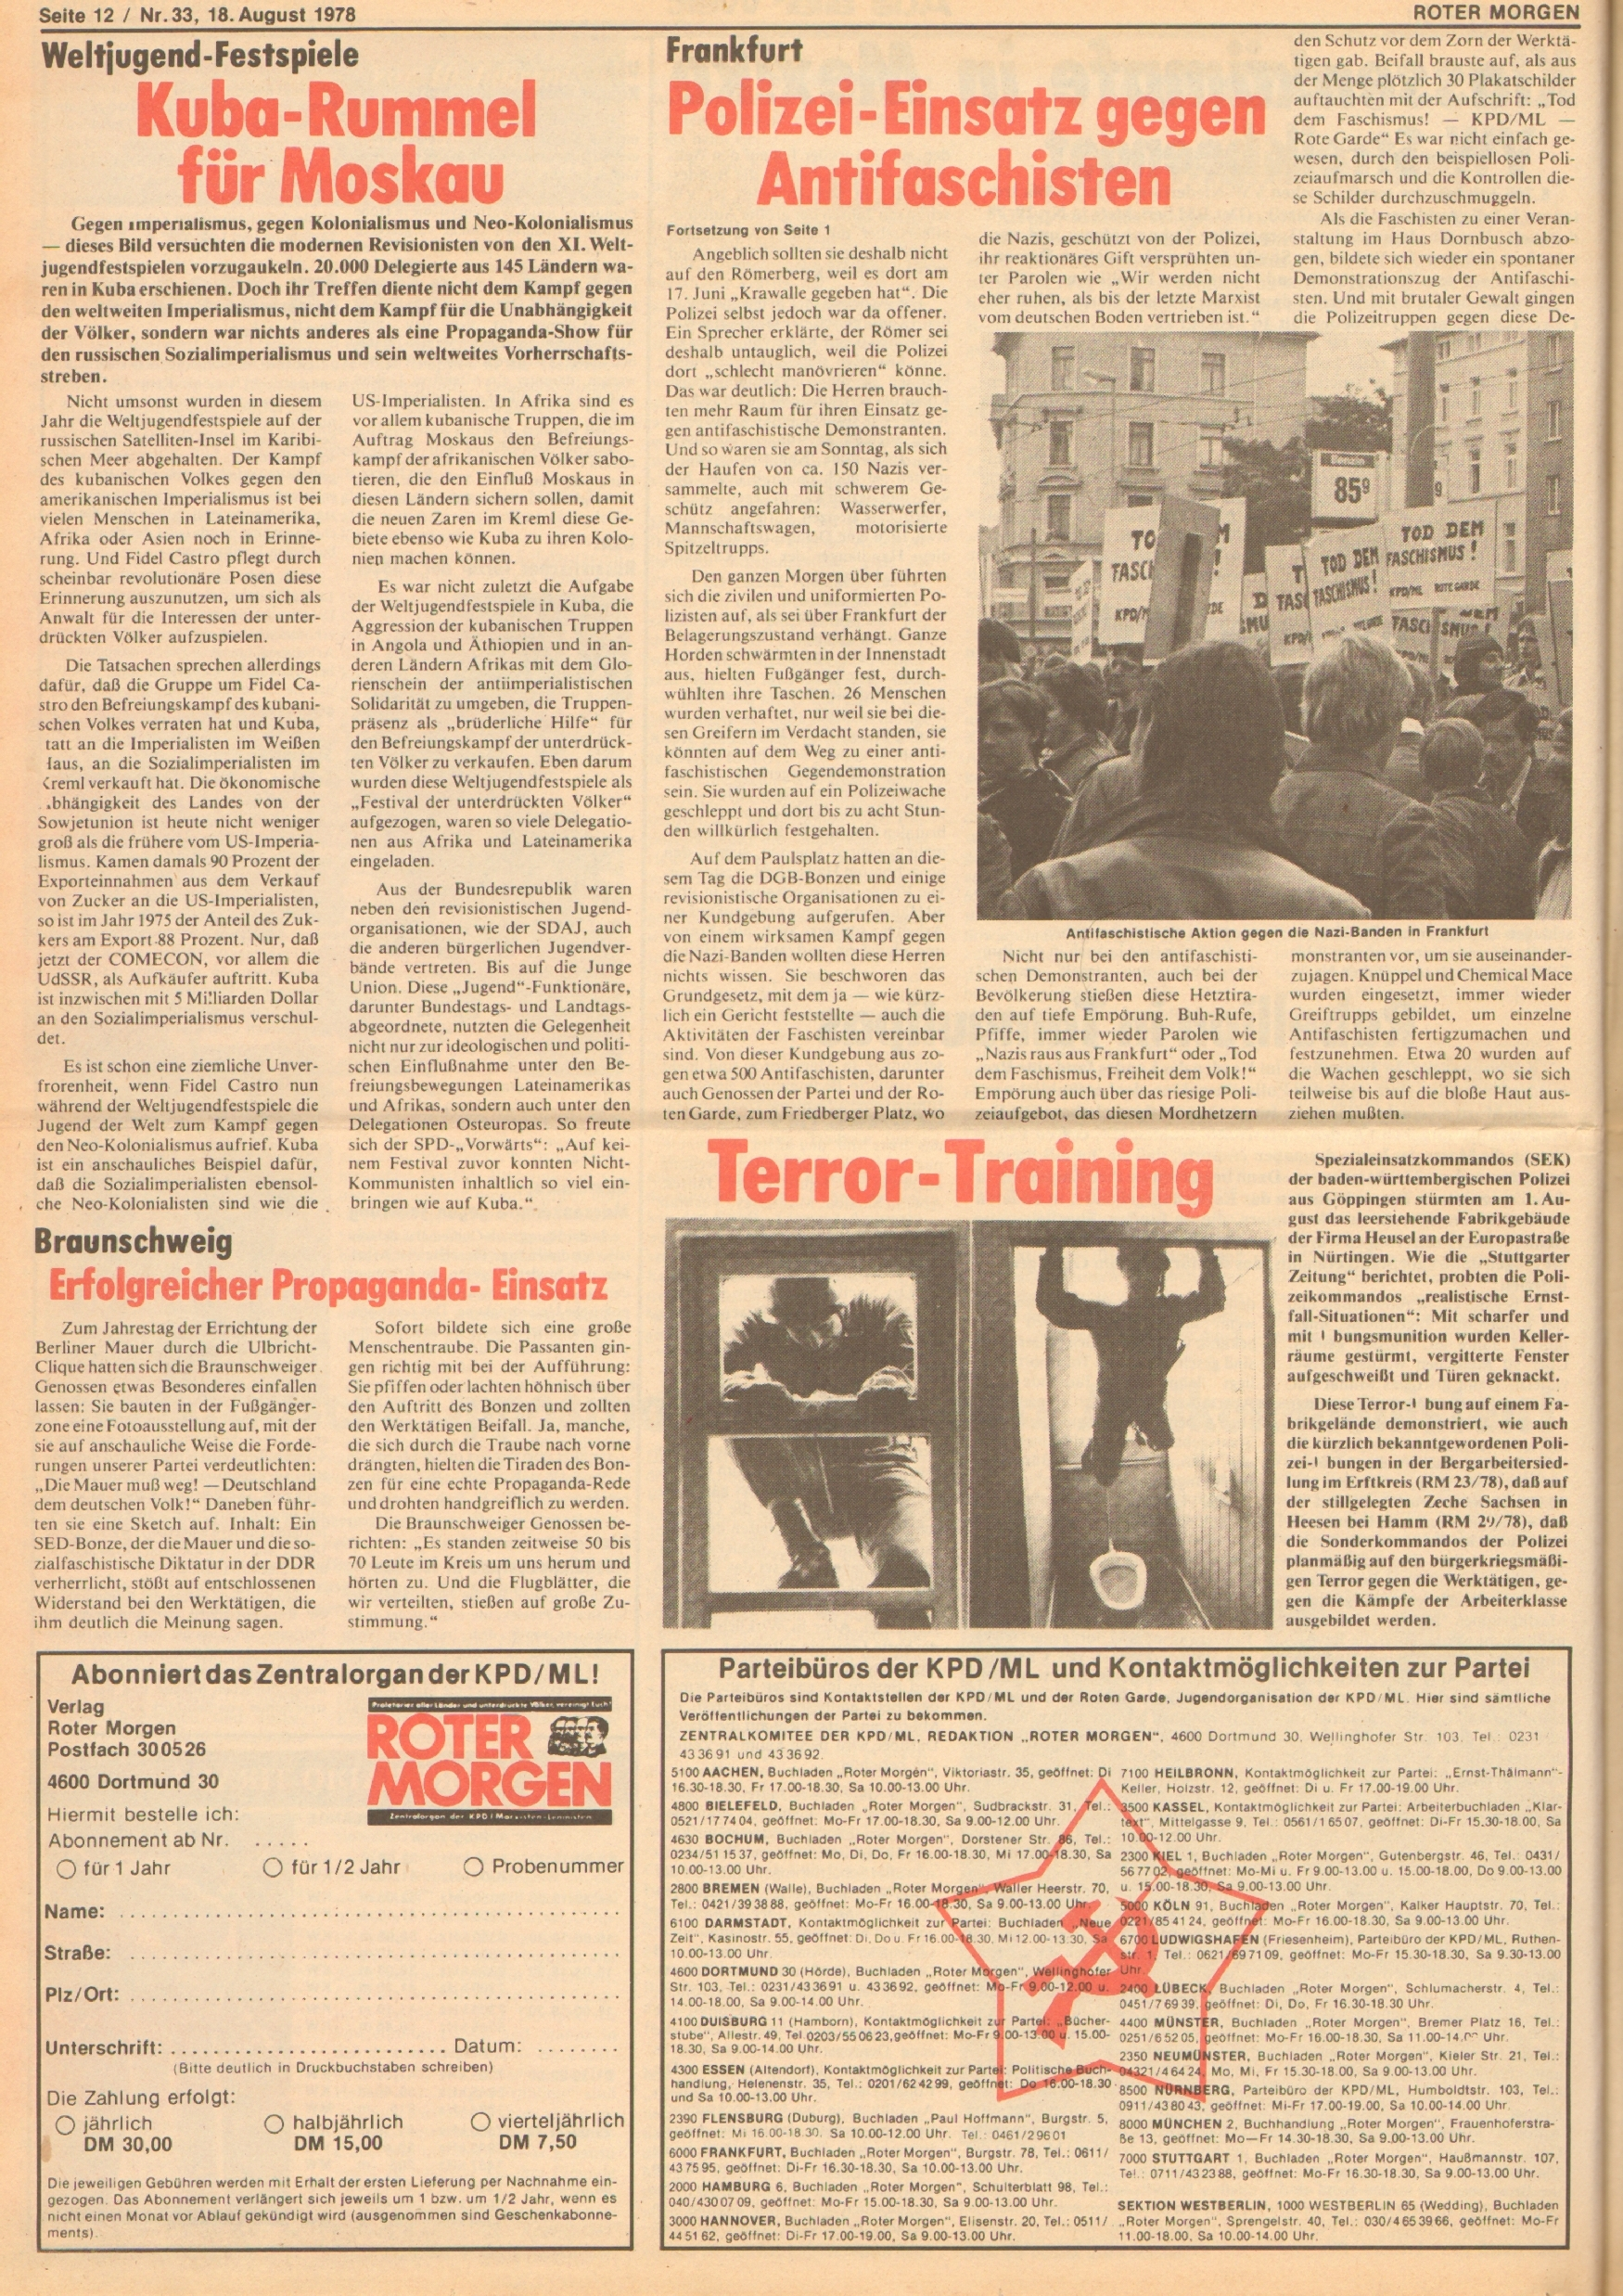 Roter Morgen, 12. Jg., 18. August 1978, Nr. 33, Seite 12